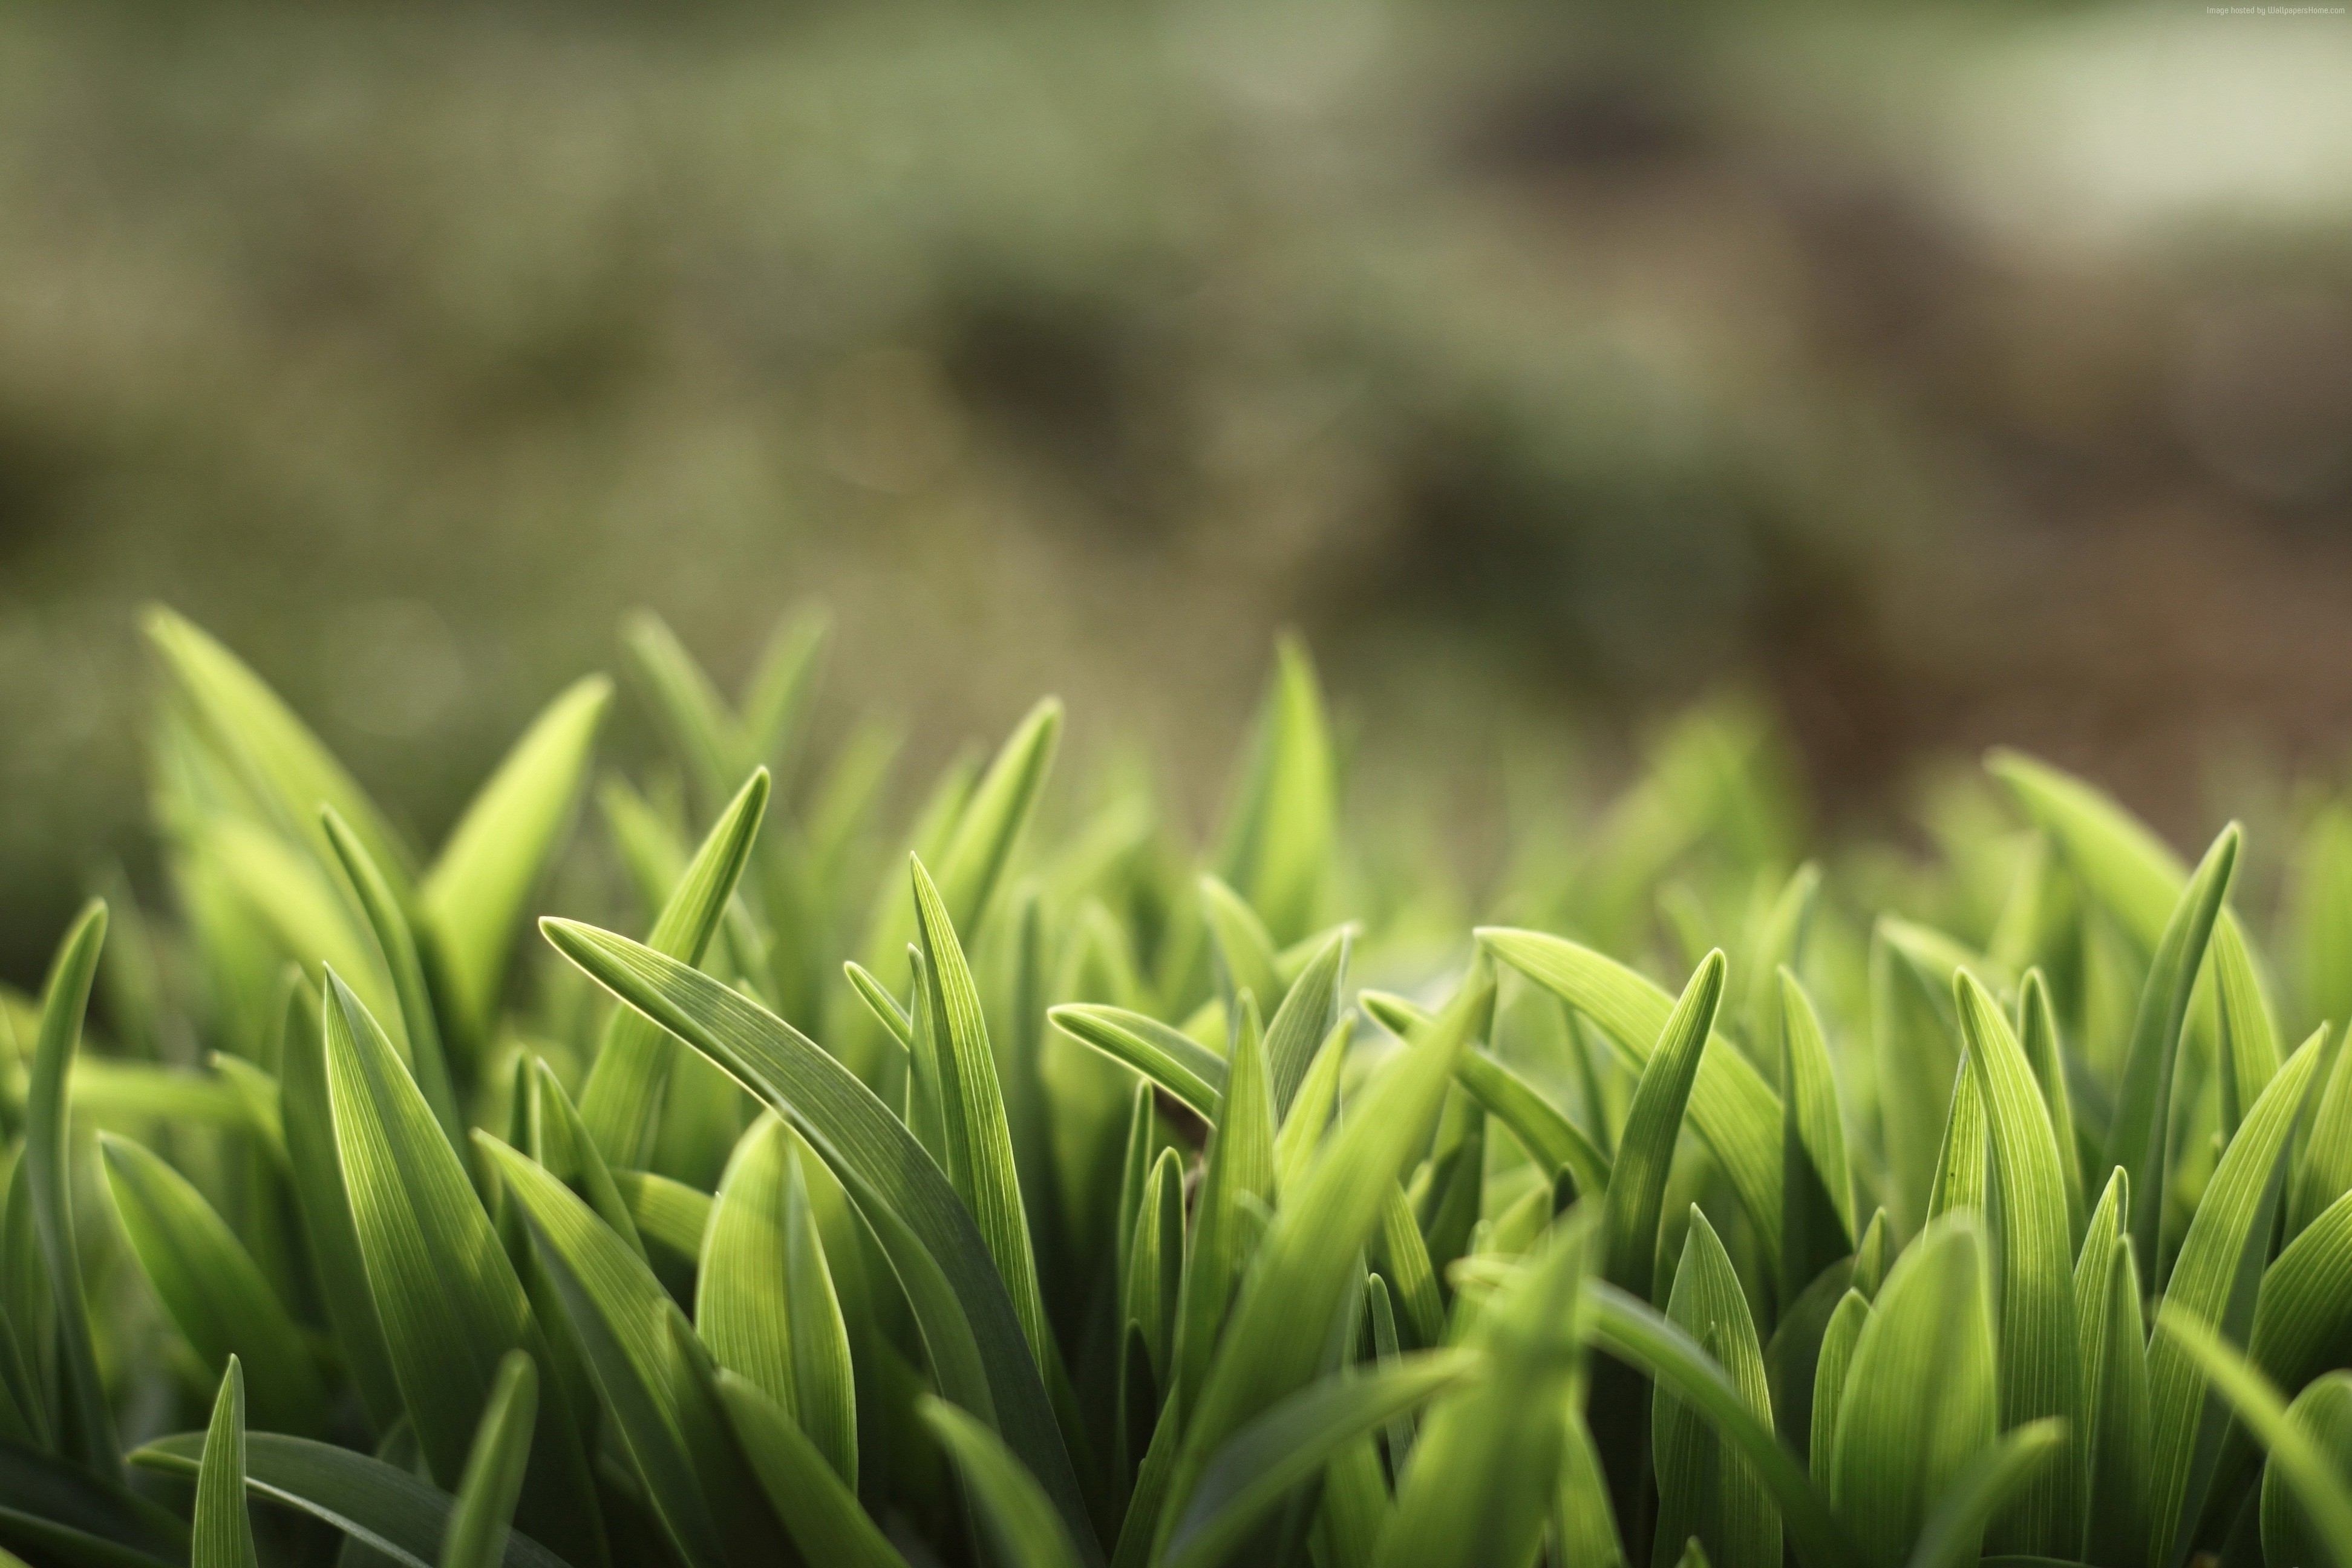 4K Green Grass Wallpapers High Quality | Download Free